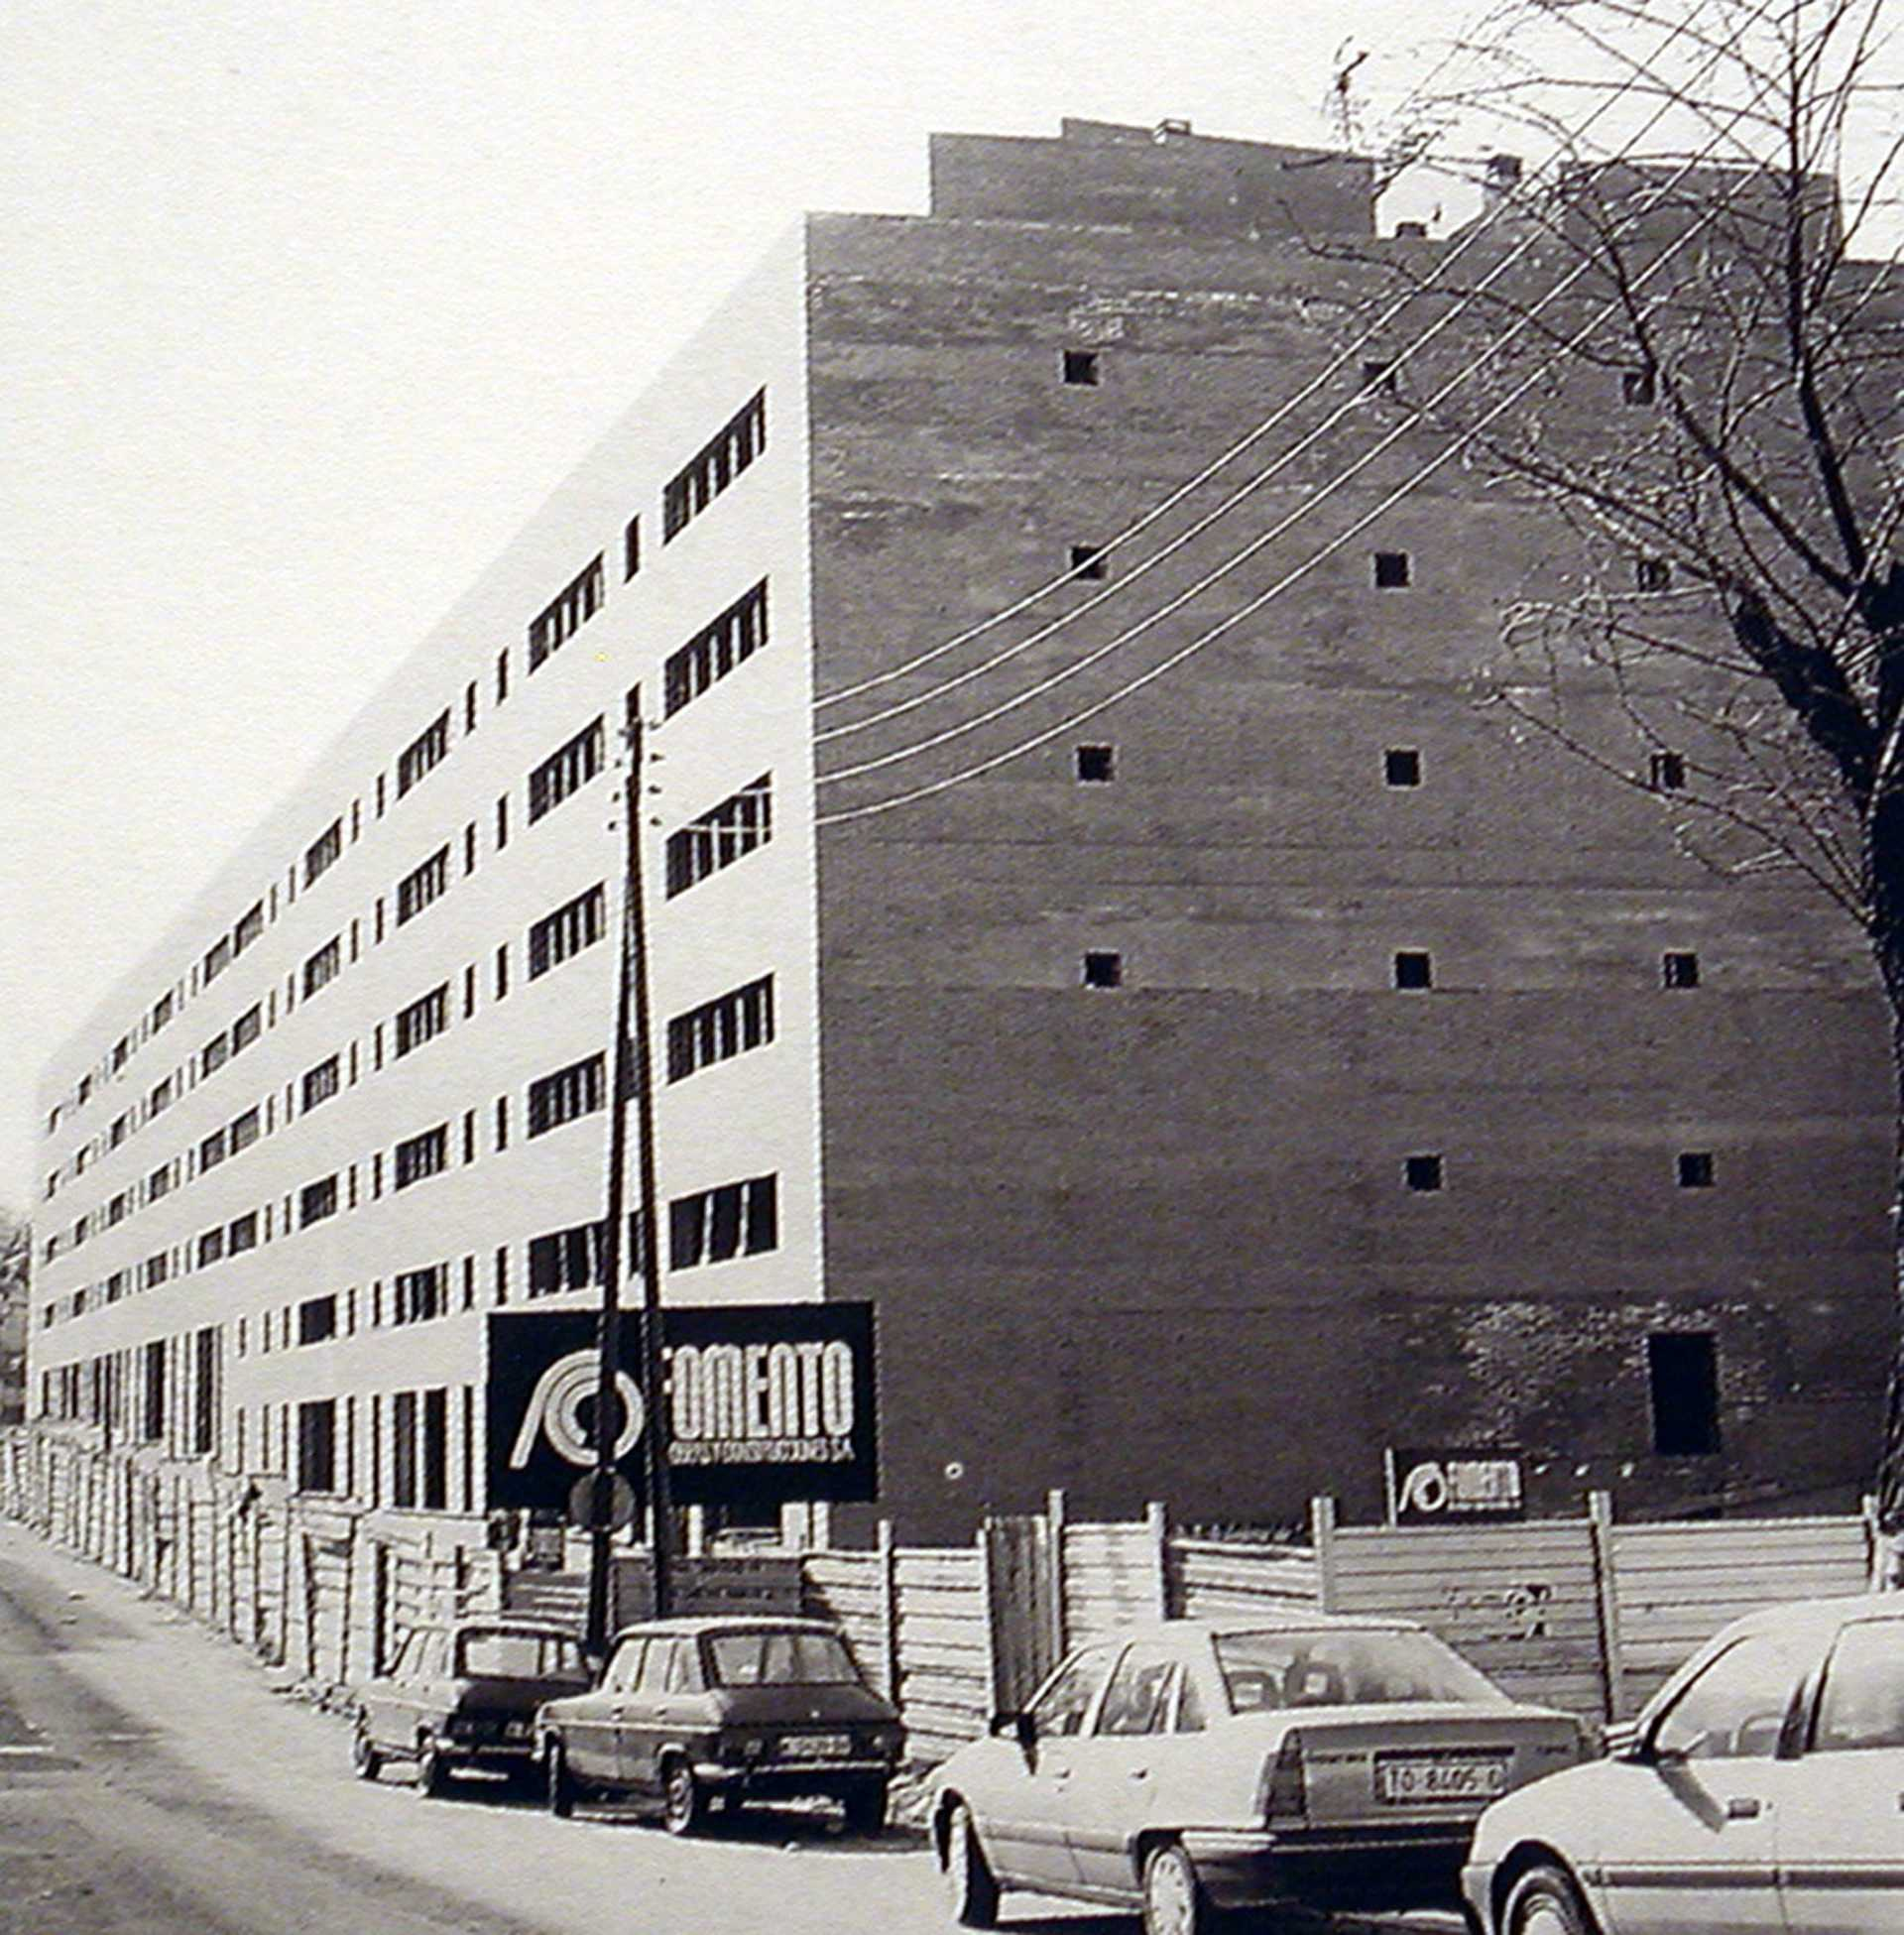 Entrevista a Alberto Campo Baeza  - 01 Housing Vallecas ICON 56